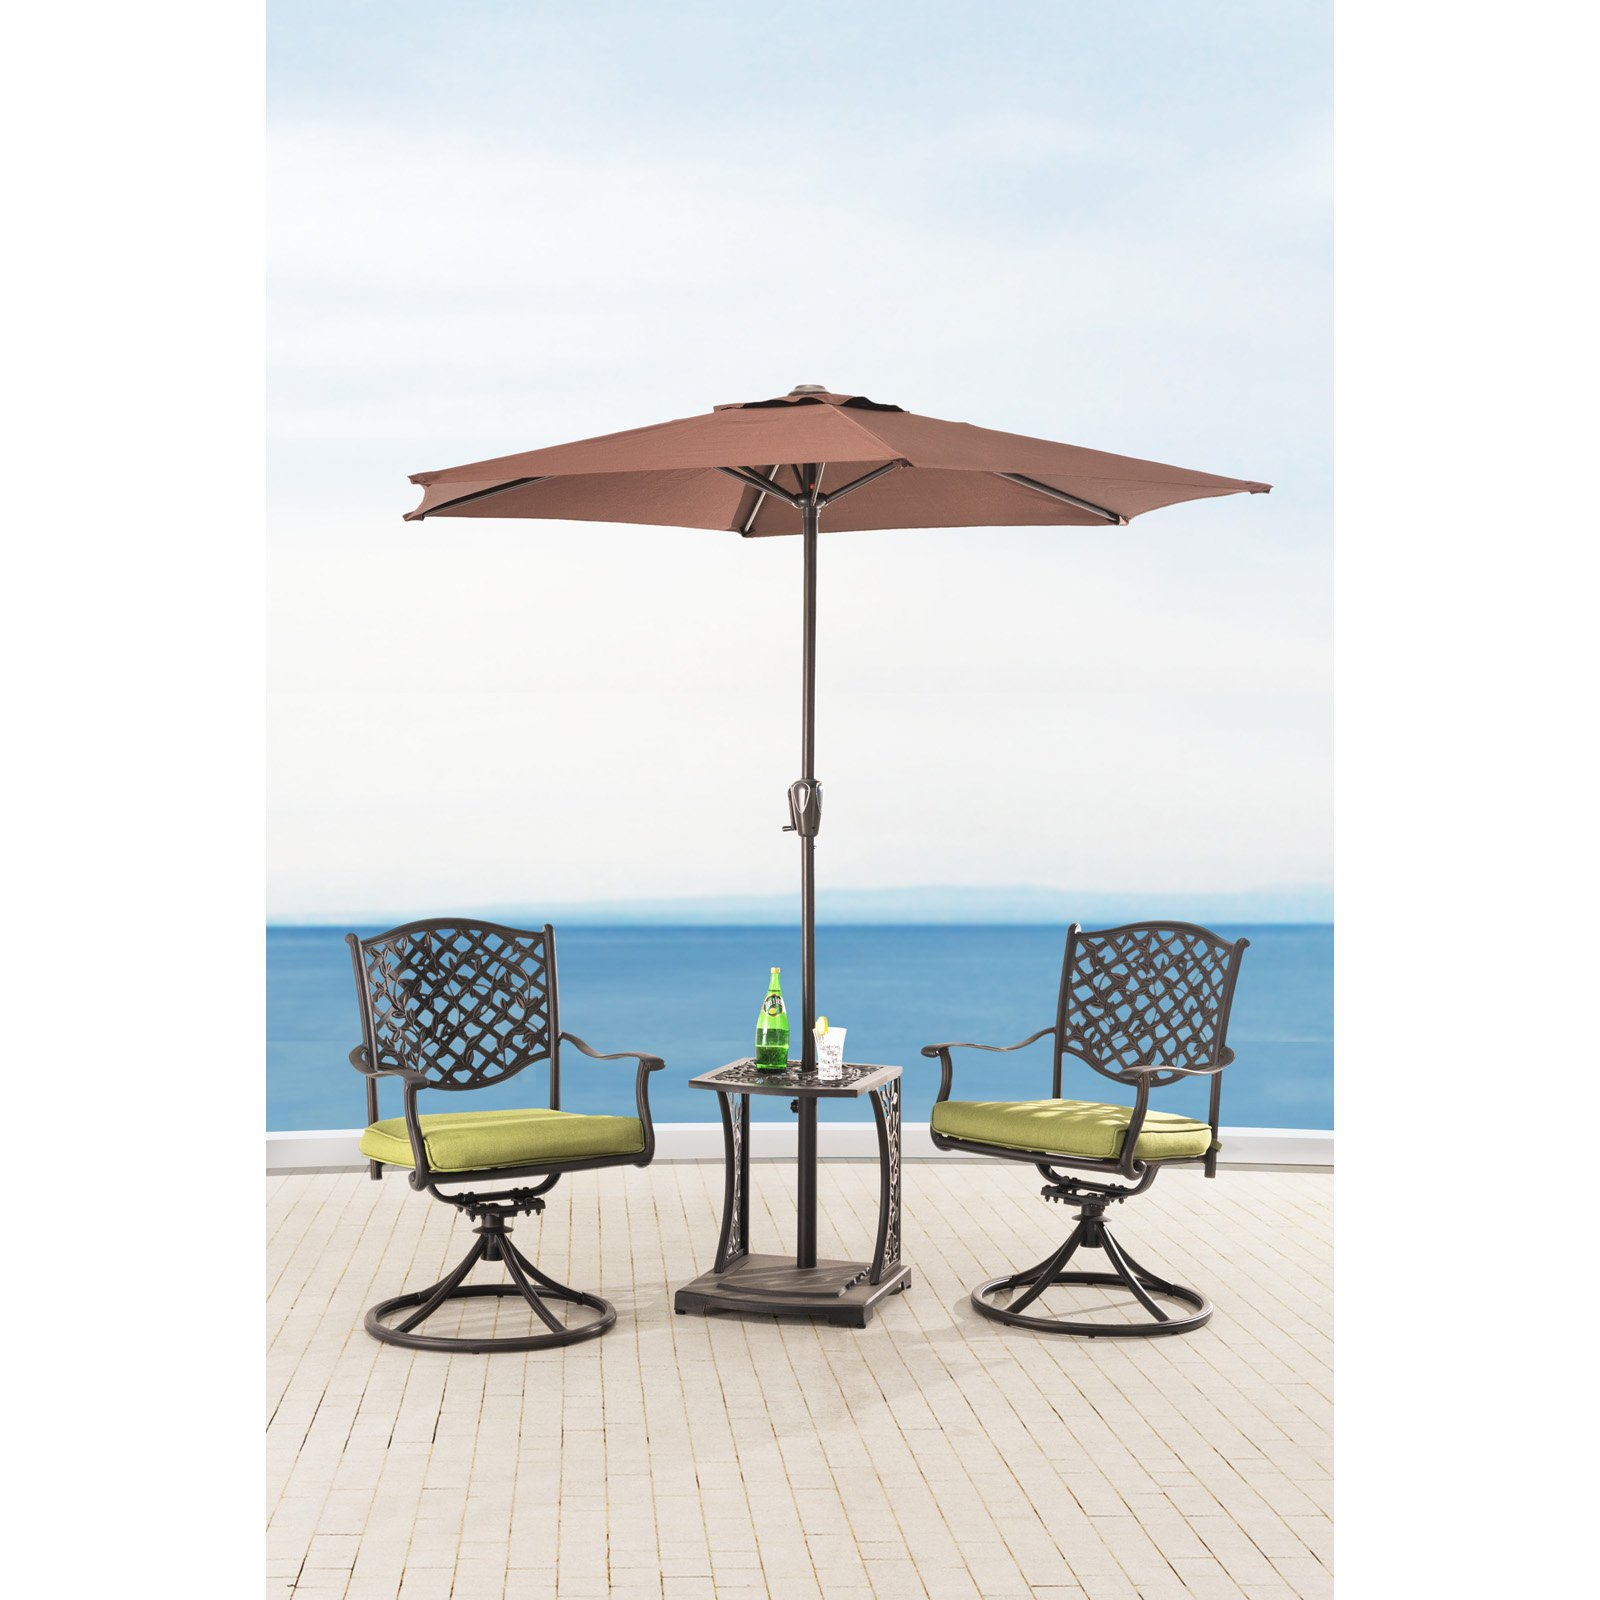 "Sunjoy 110202012 Vining Cast Steel Bistro Set with Green Cushions, 20"" x 19"" x 22"""